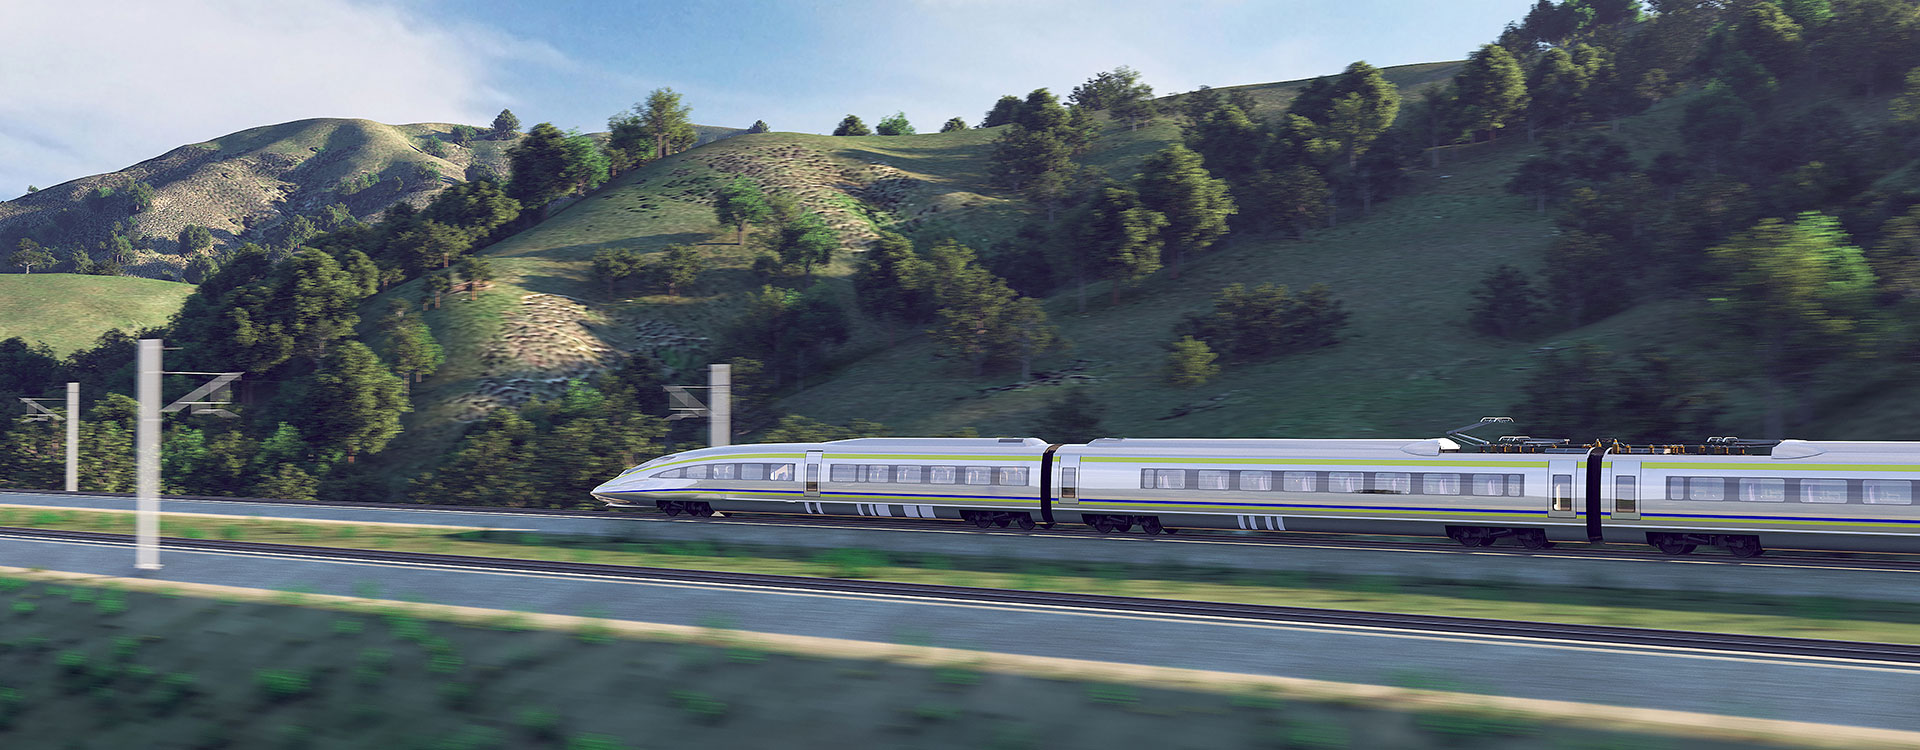 bnr-california high speed train